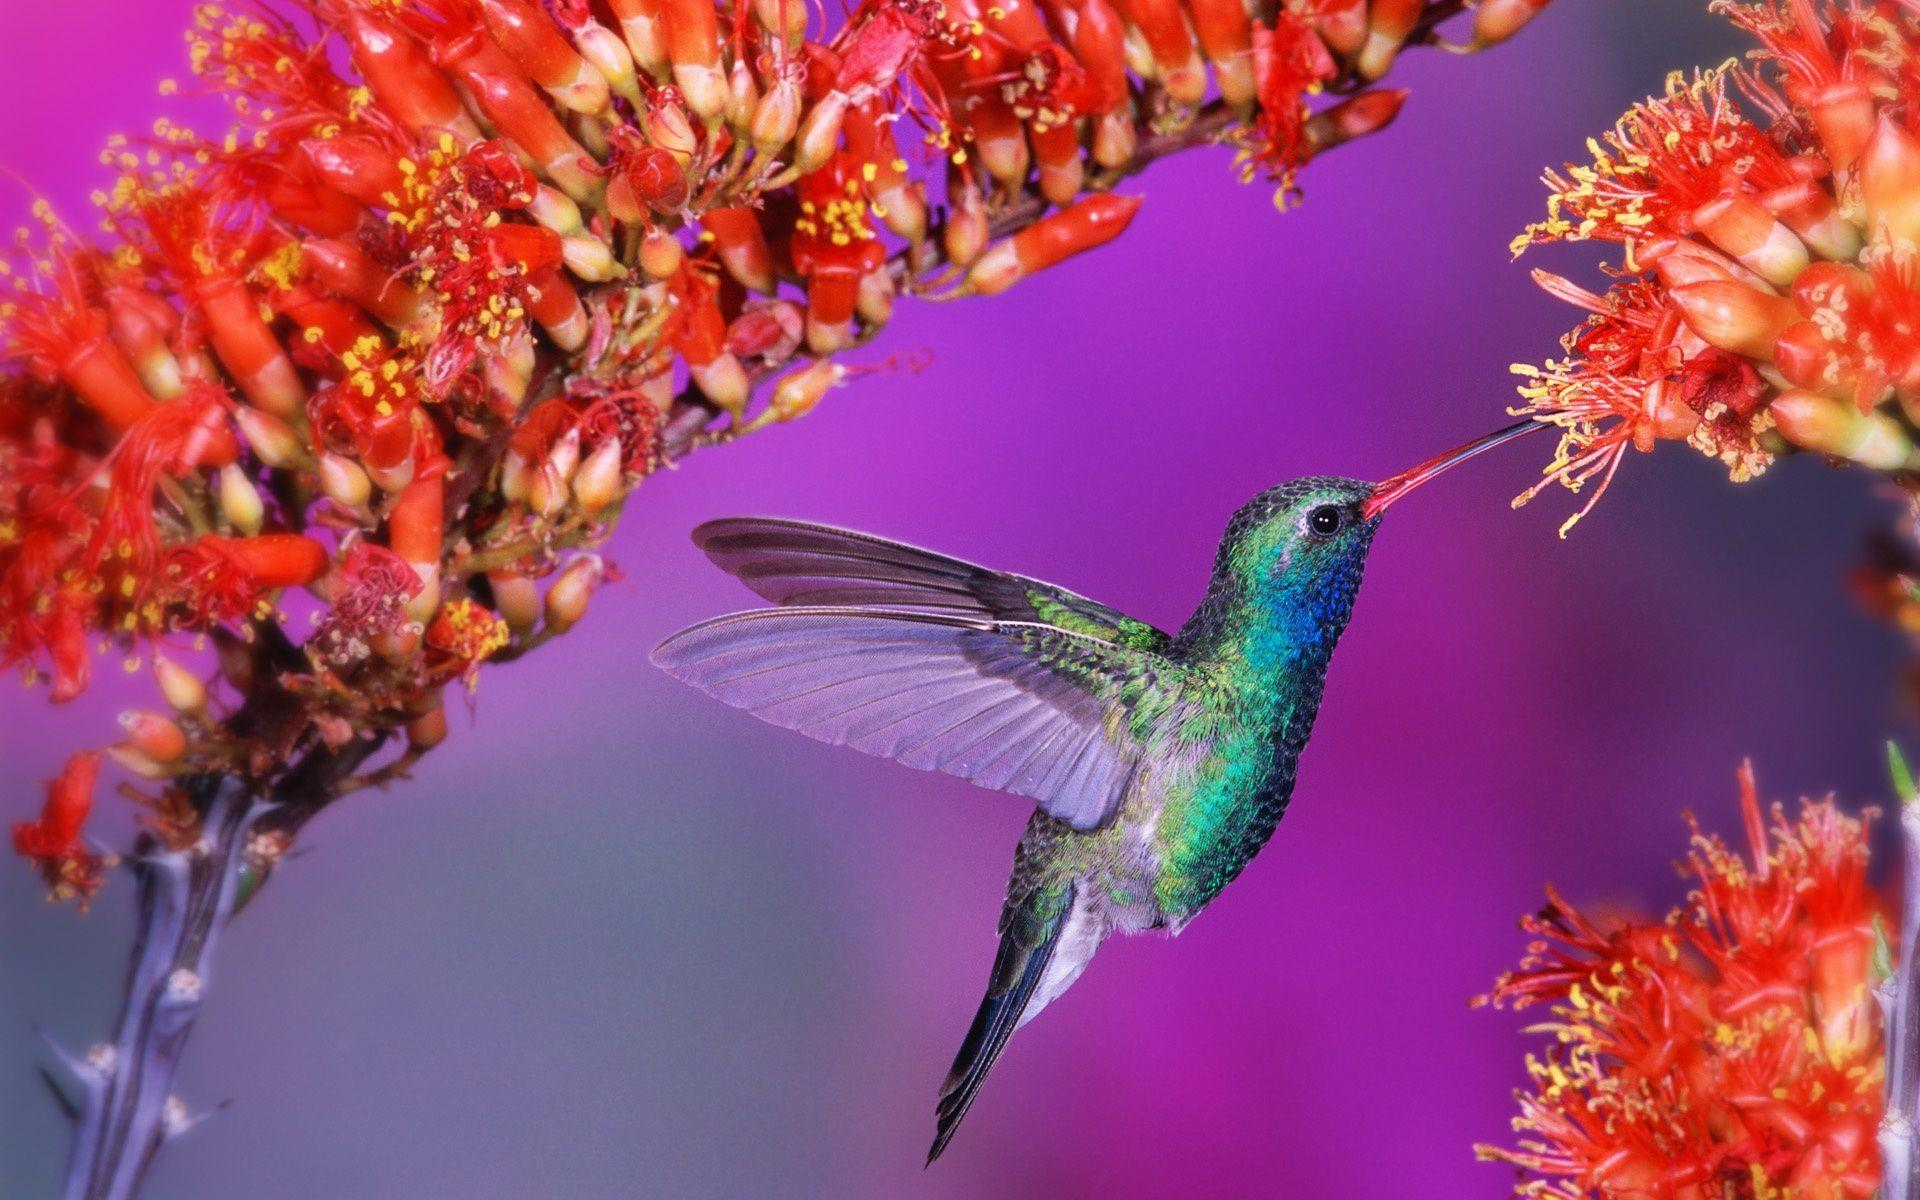 Geography Hd Wallpaper Free Hummingbird Wallpapers Wallpaper Cave